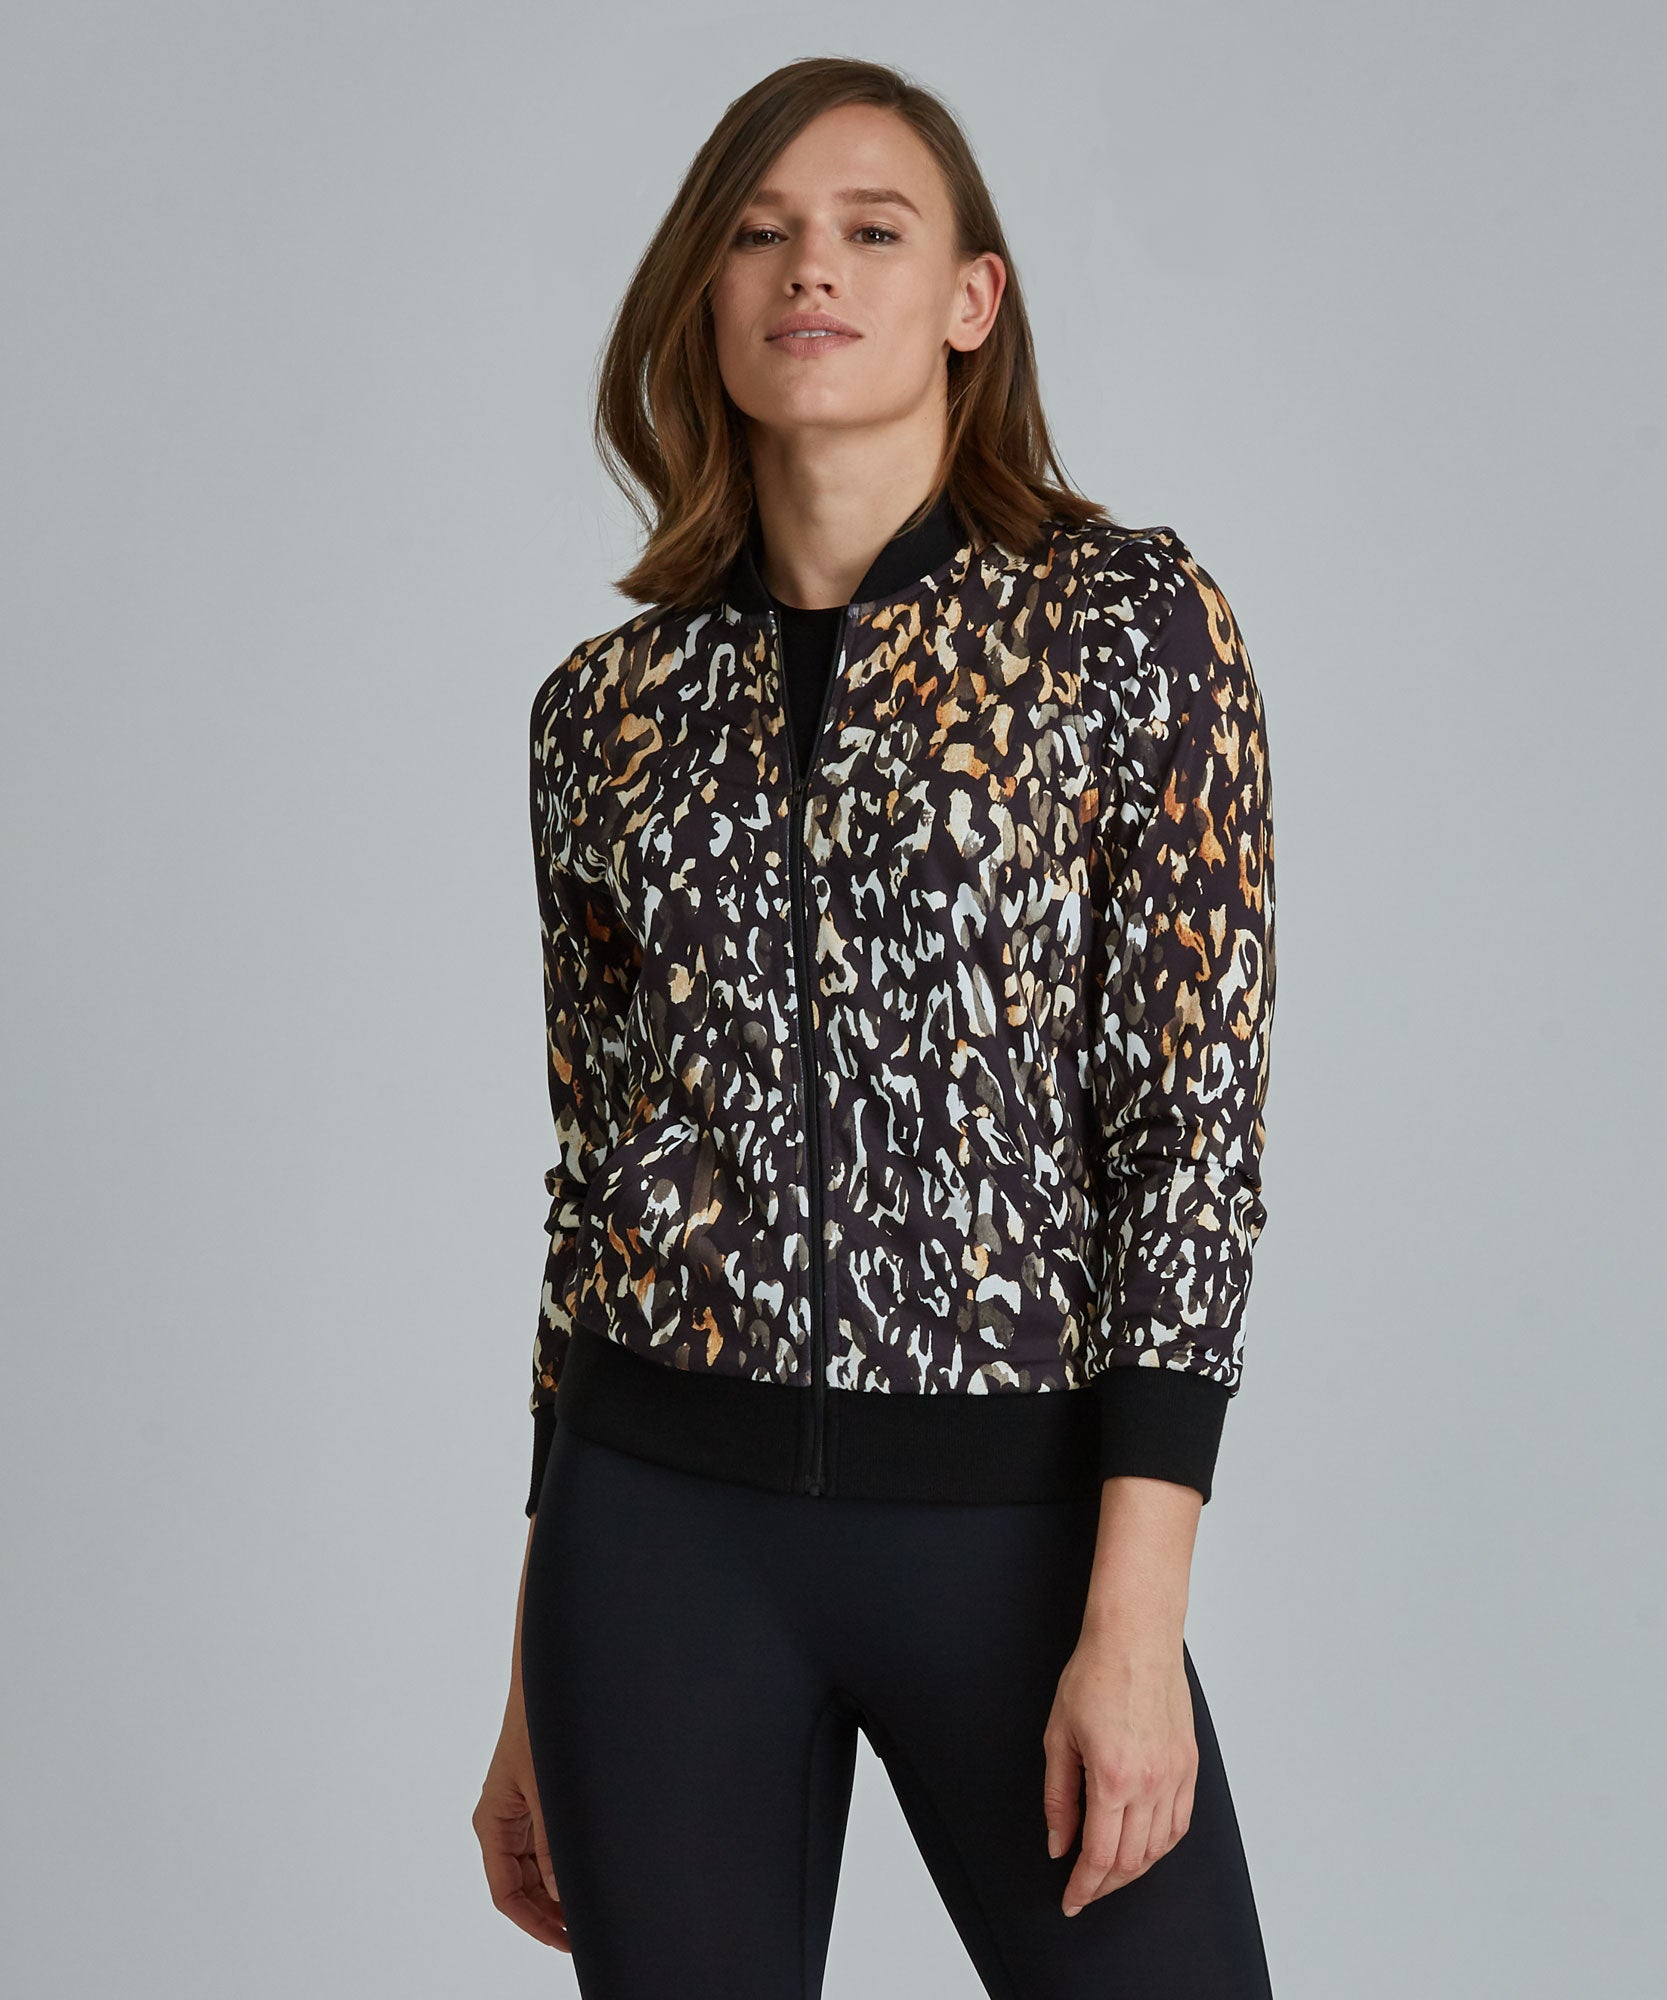 Lindy Jacket - Ombre Cheetah